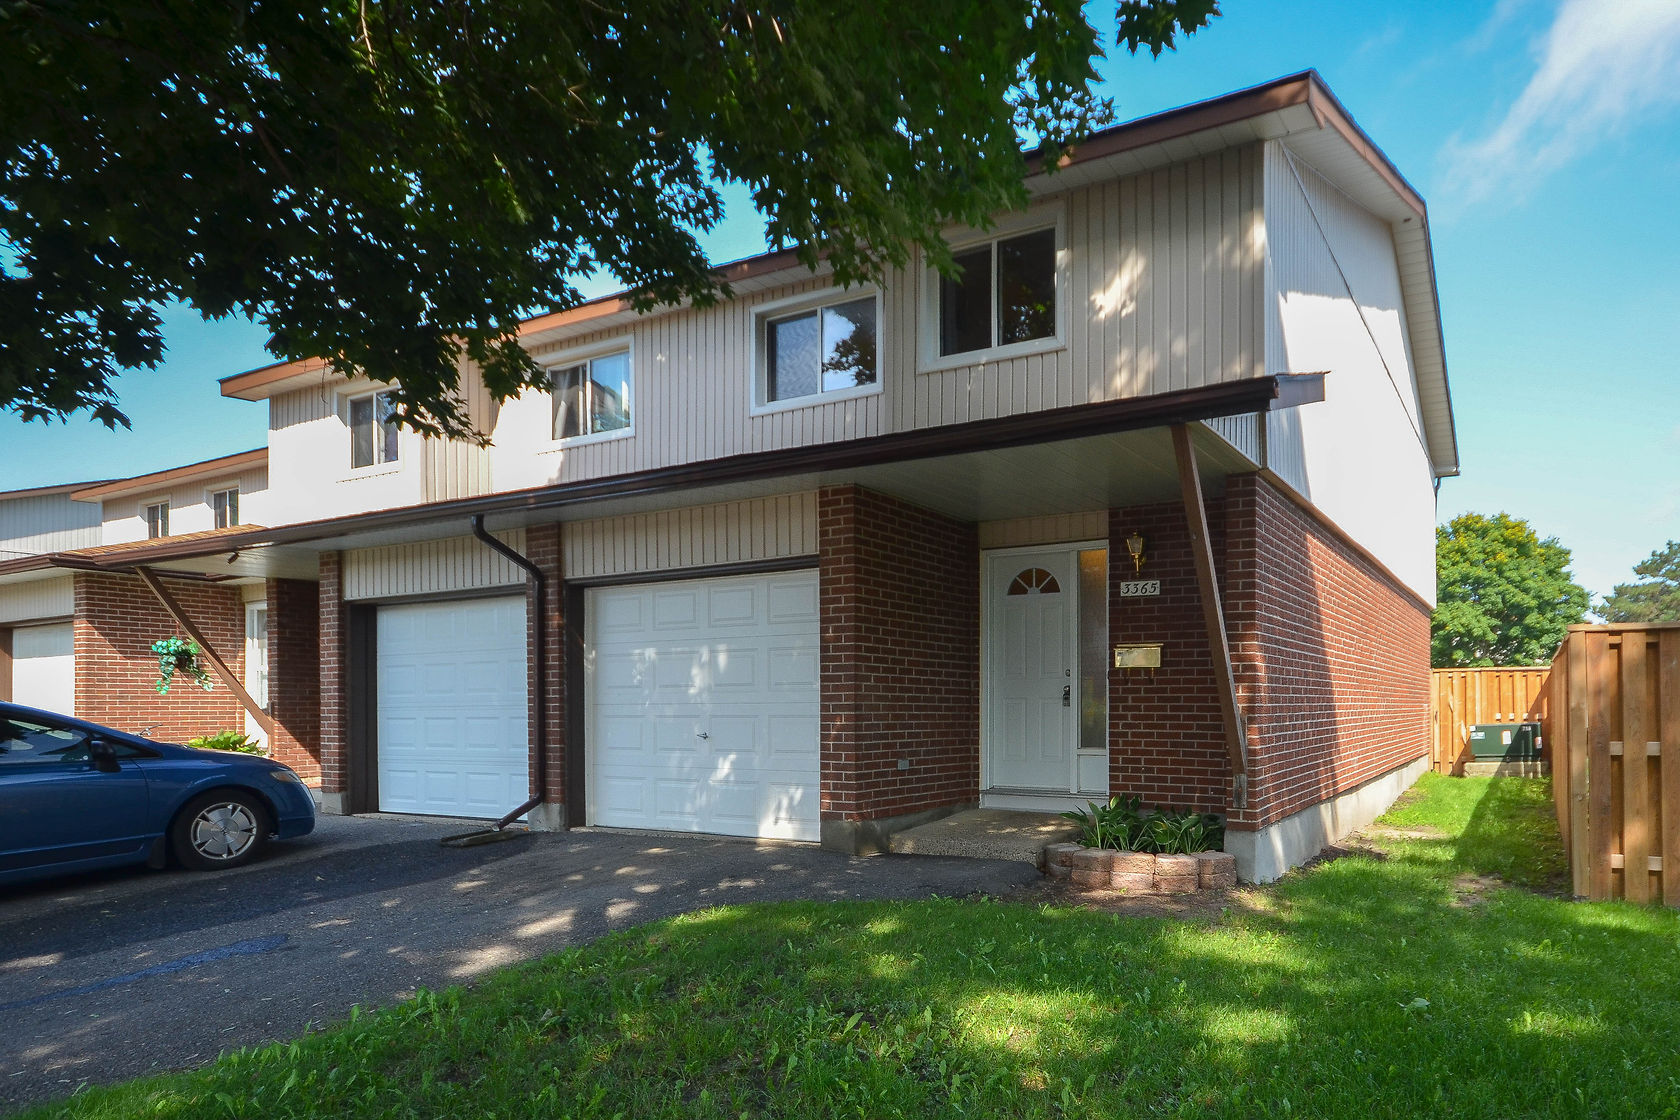 3365 Hogarth Ave - Wonderful 4 Bed, 2 Bath End Unit Condo Townhouse in Blossom Park area!